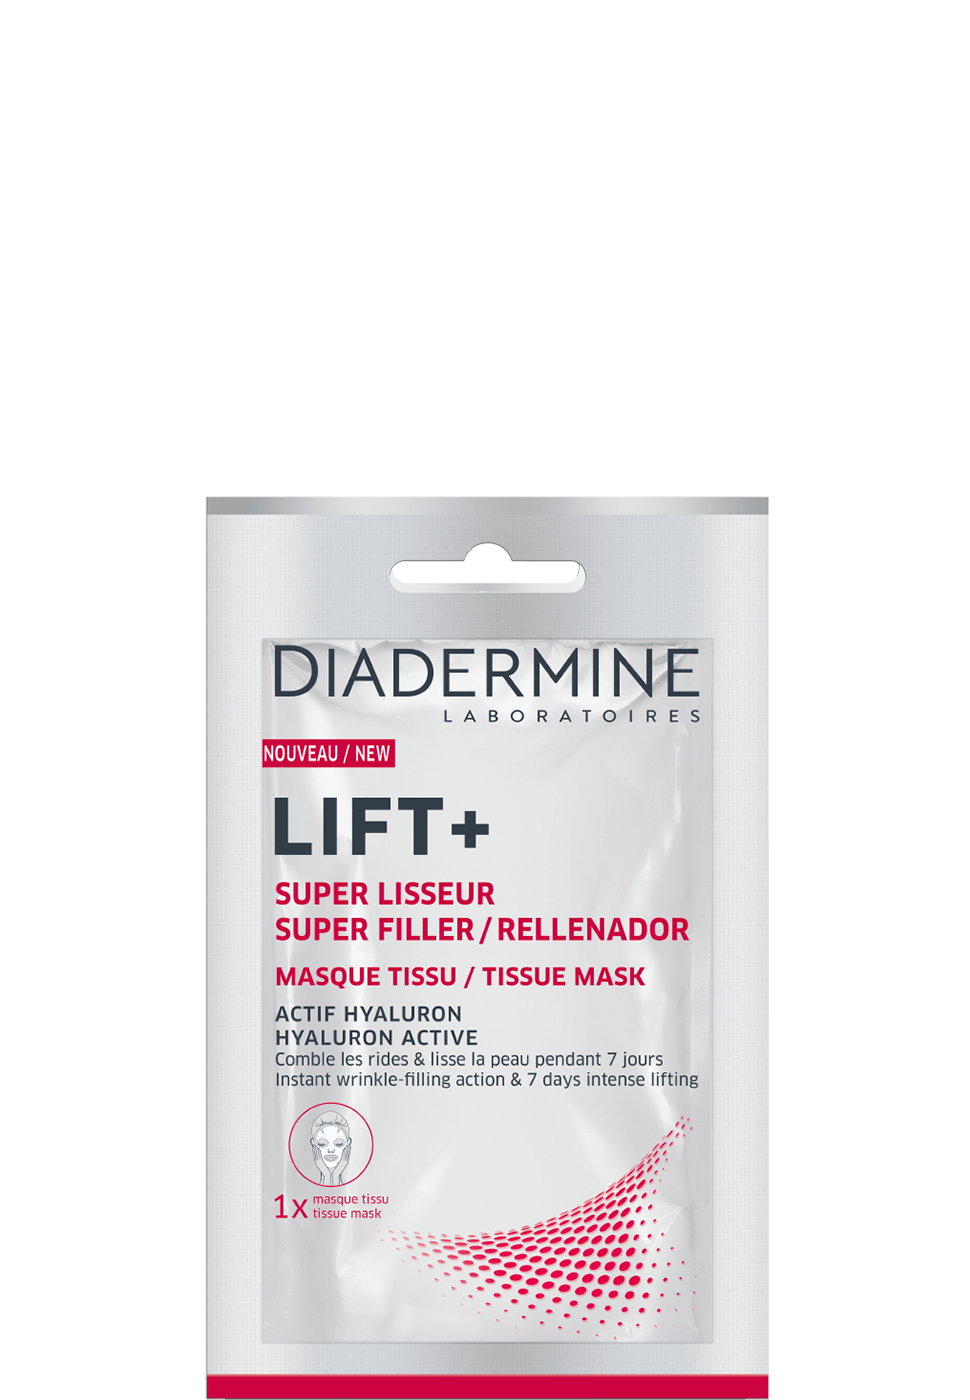 diadermine_at_lift_plus_super_filler_tuchmaske_970x1400